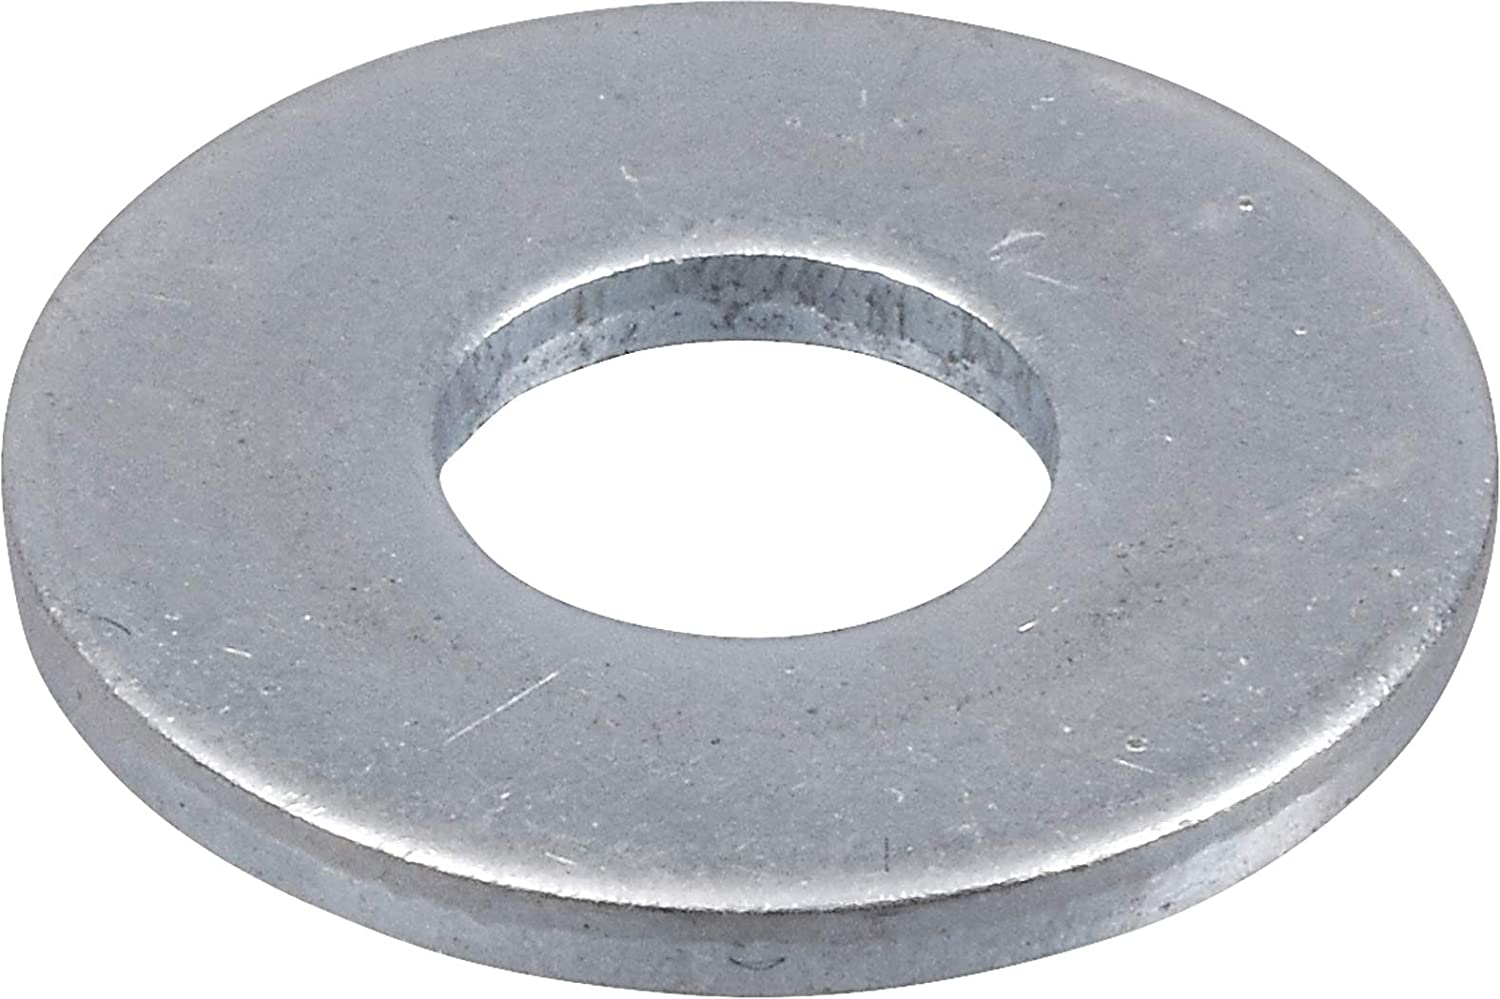 The Hillman Group 370826 Hex Head Sleeve Anchor 35-Pack by The Hillman Group 5//16 X 2-1//2-Inch